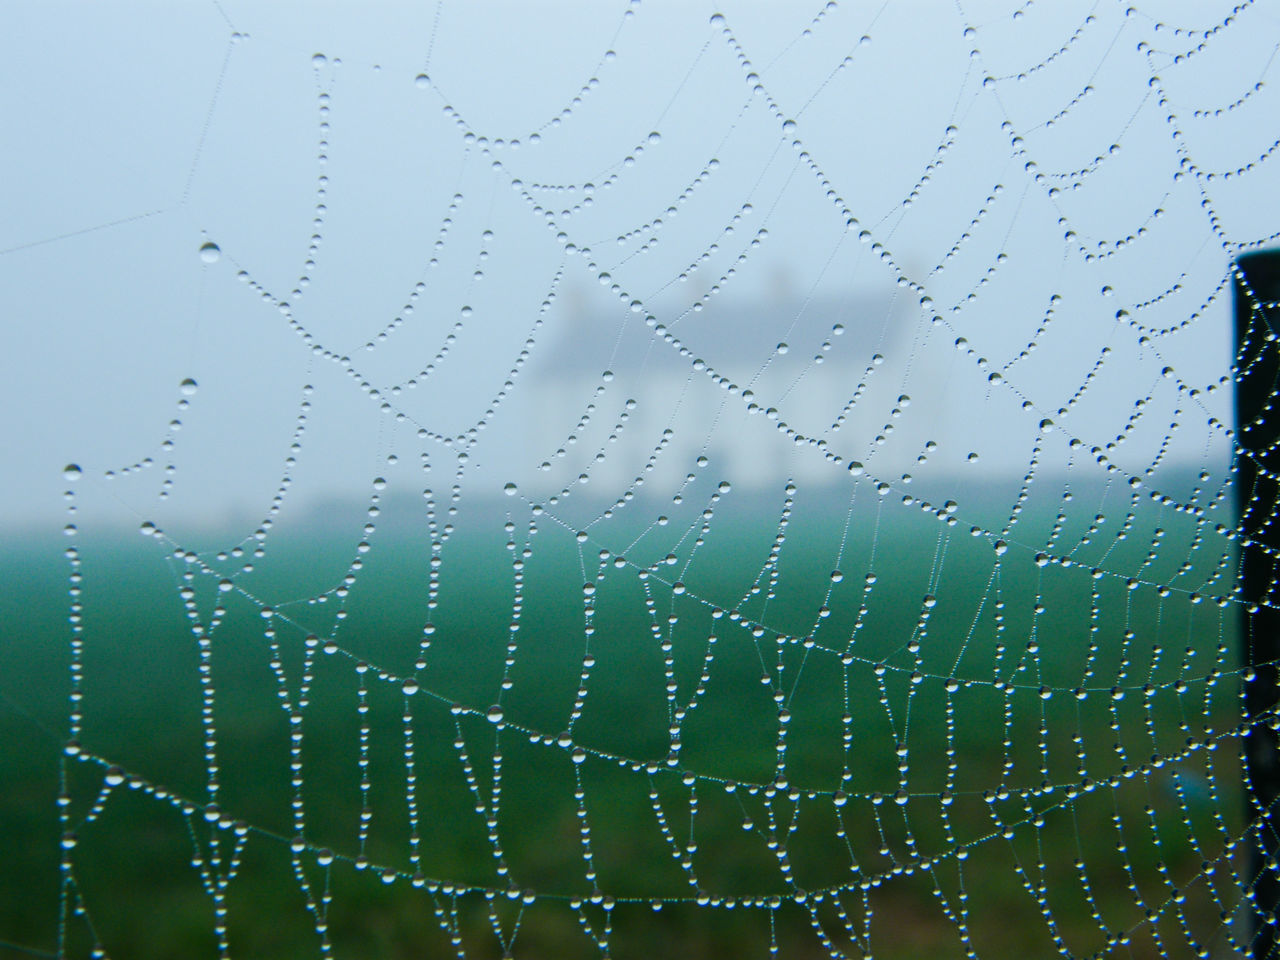 Animal Themes Backgrounds Beauty In Nature Close-up Day Dew Dew Drops Dew Drops On Spider Web Drop Foggy Morning Fragility Full Frame Misty Misty Morning Nature No People Outdoors Sky Spider Spider Web Water Web